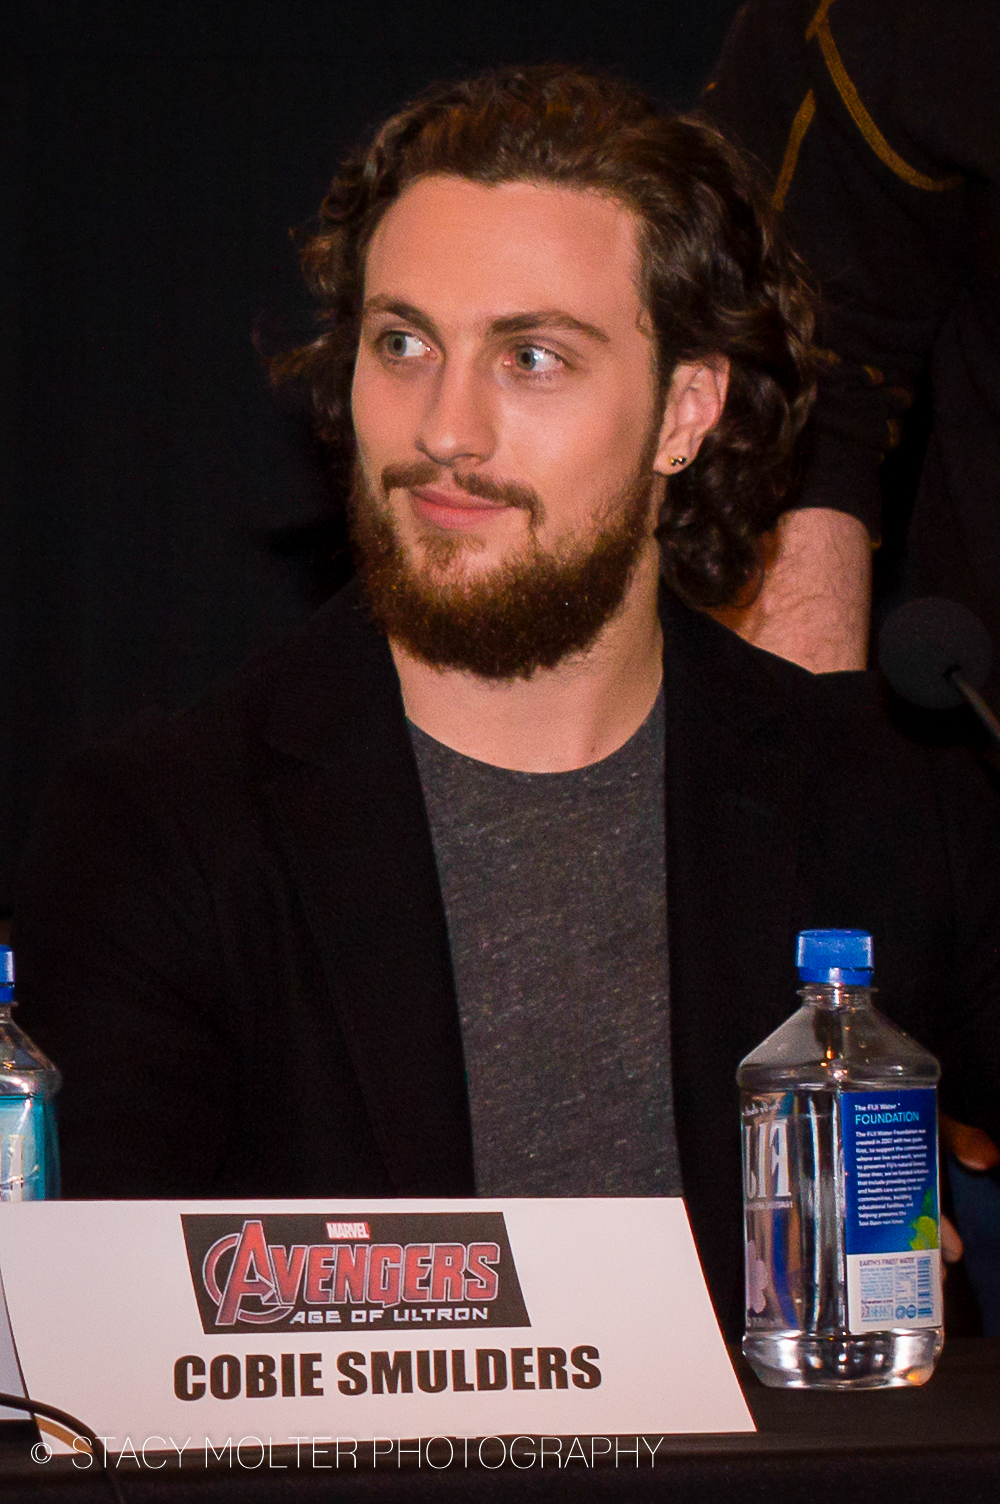 Aaron Taylor Johnson - Avengers Age of Ultron Press Conference Junket